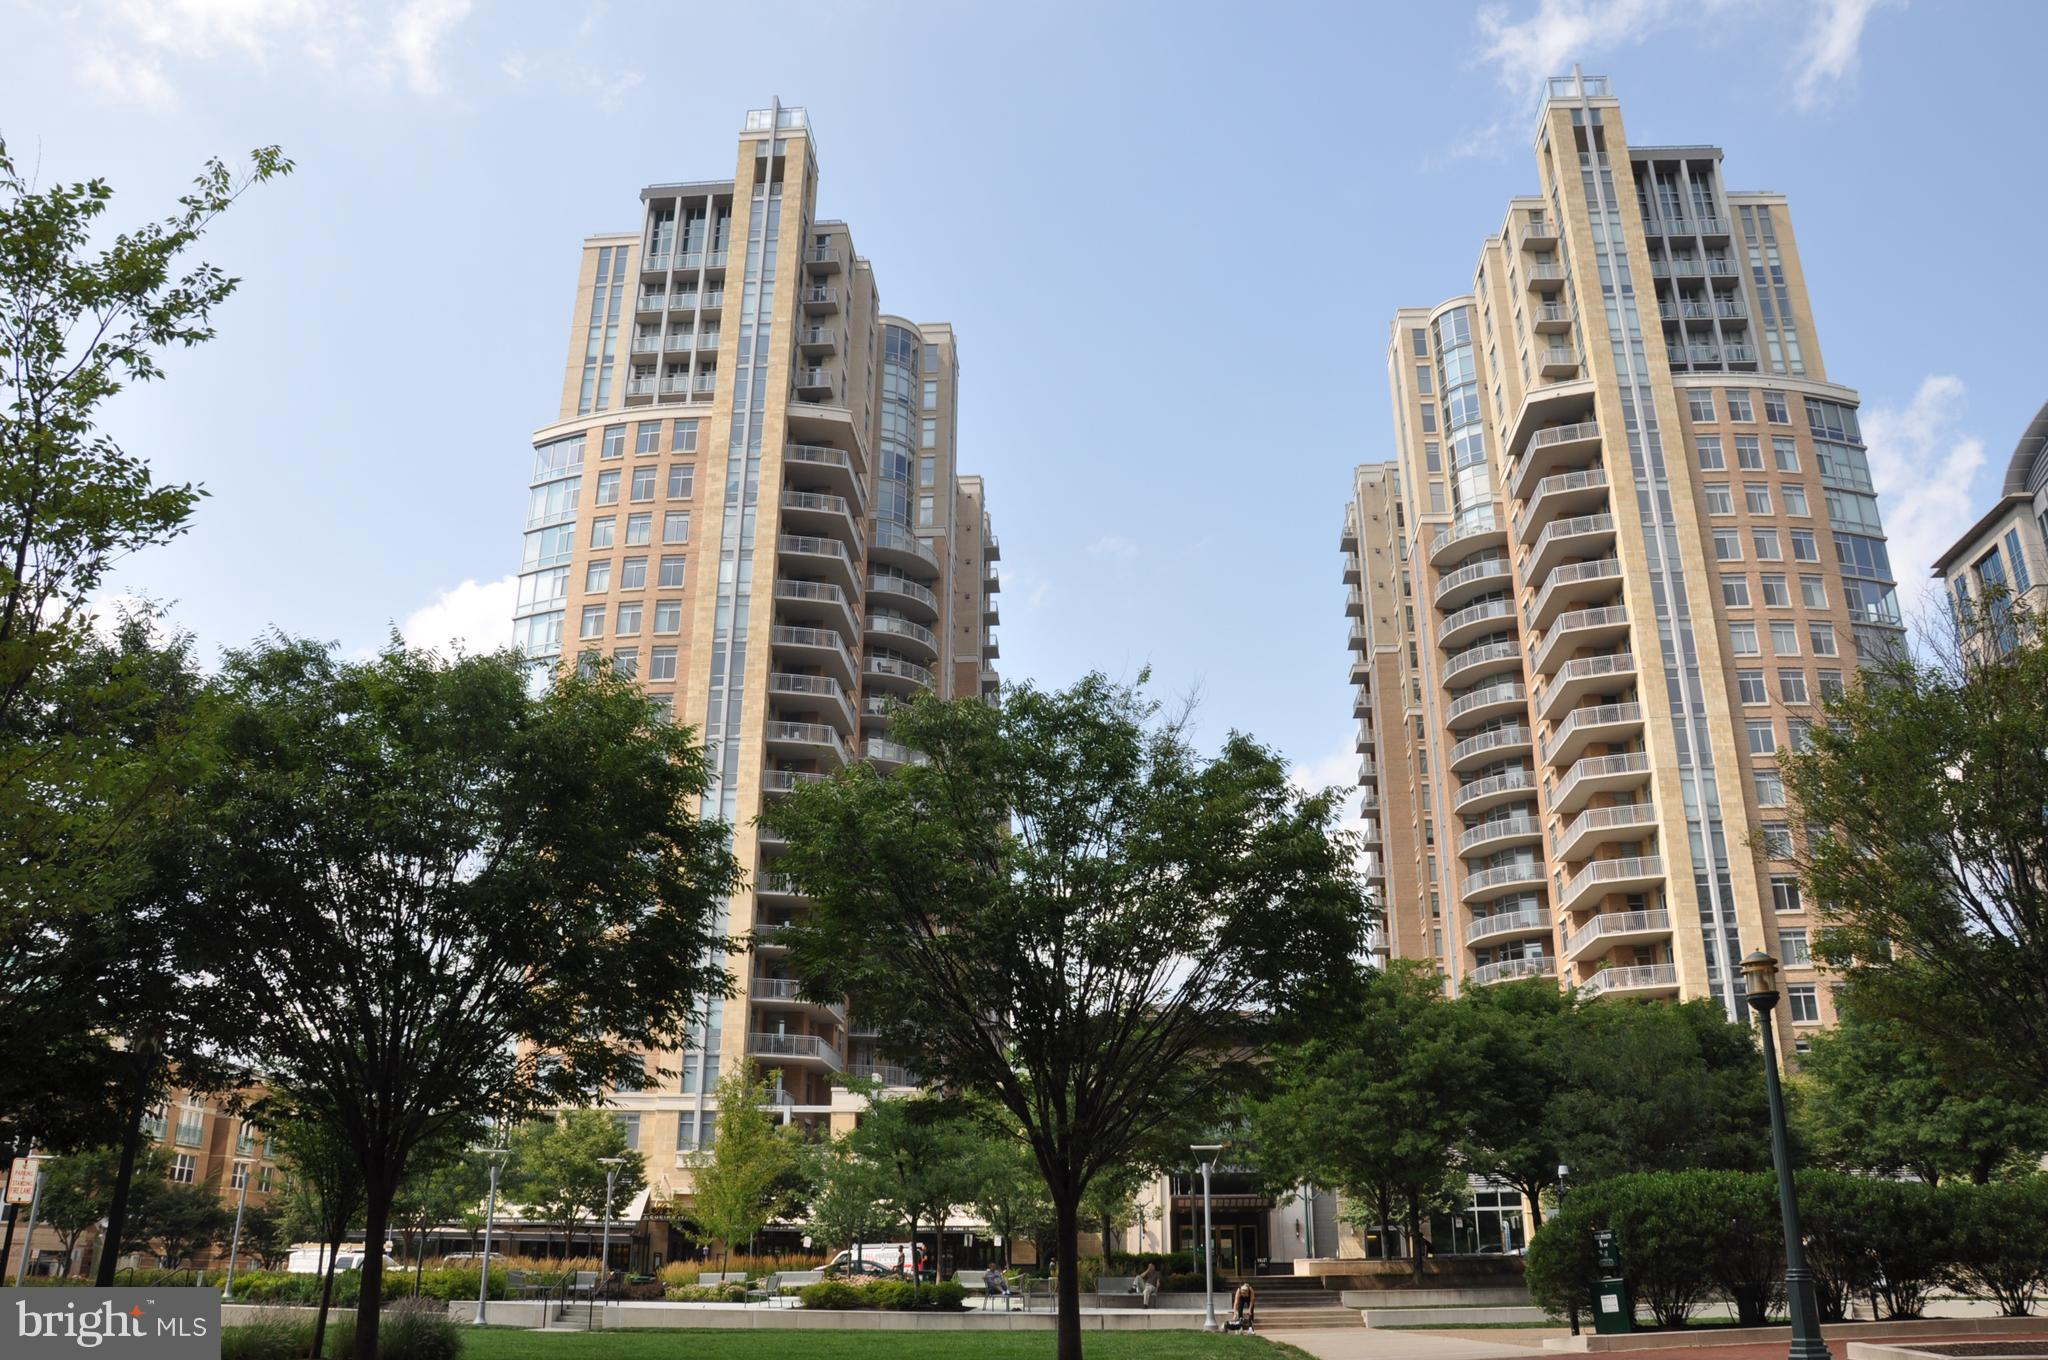 Pervious Midtown Model Home for rent! NYC 5TH AVE LIVING. 5-star high-rise community overlooking Market Street. Walk to Silver Line Metro. 3 bedrooms and 2 baths; 1619 sq; 2 balconies; Private balcony linked to Master BR and another one linked to living room;  Designer kitchen w/ 42' cabinets, granite countertop, S/S appliances; Luxury Baths; Hardwood Floor; Formerly model home w/ tons of upgrades